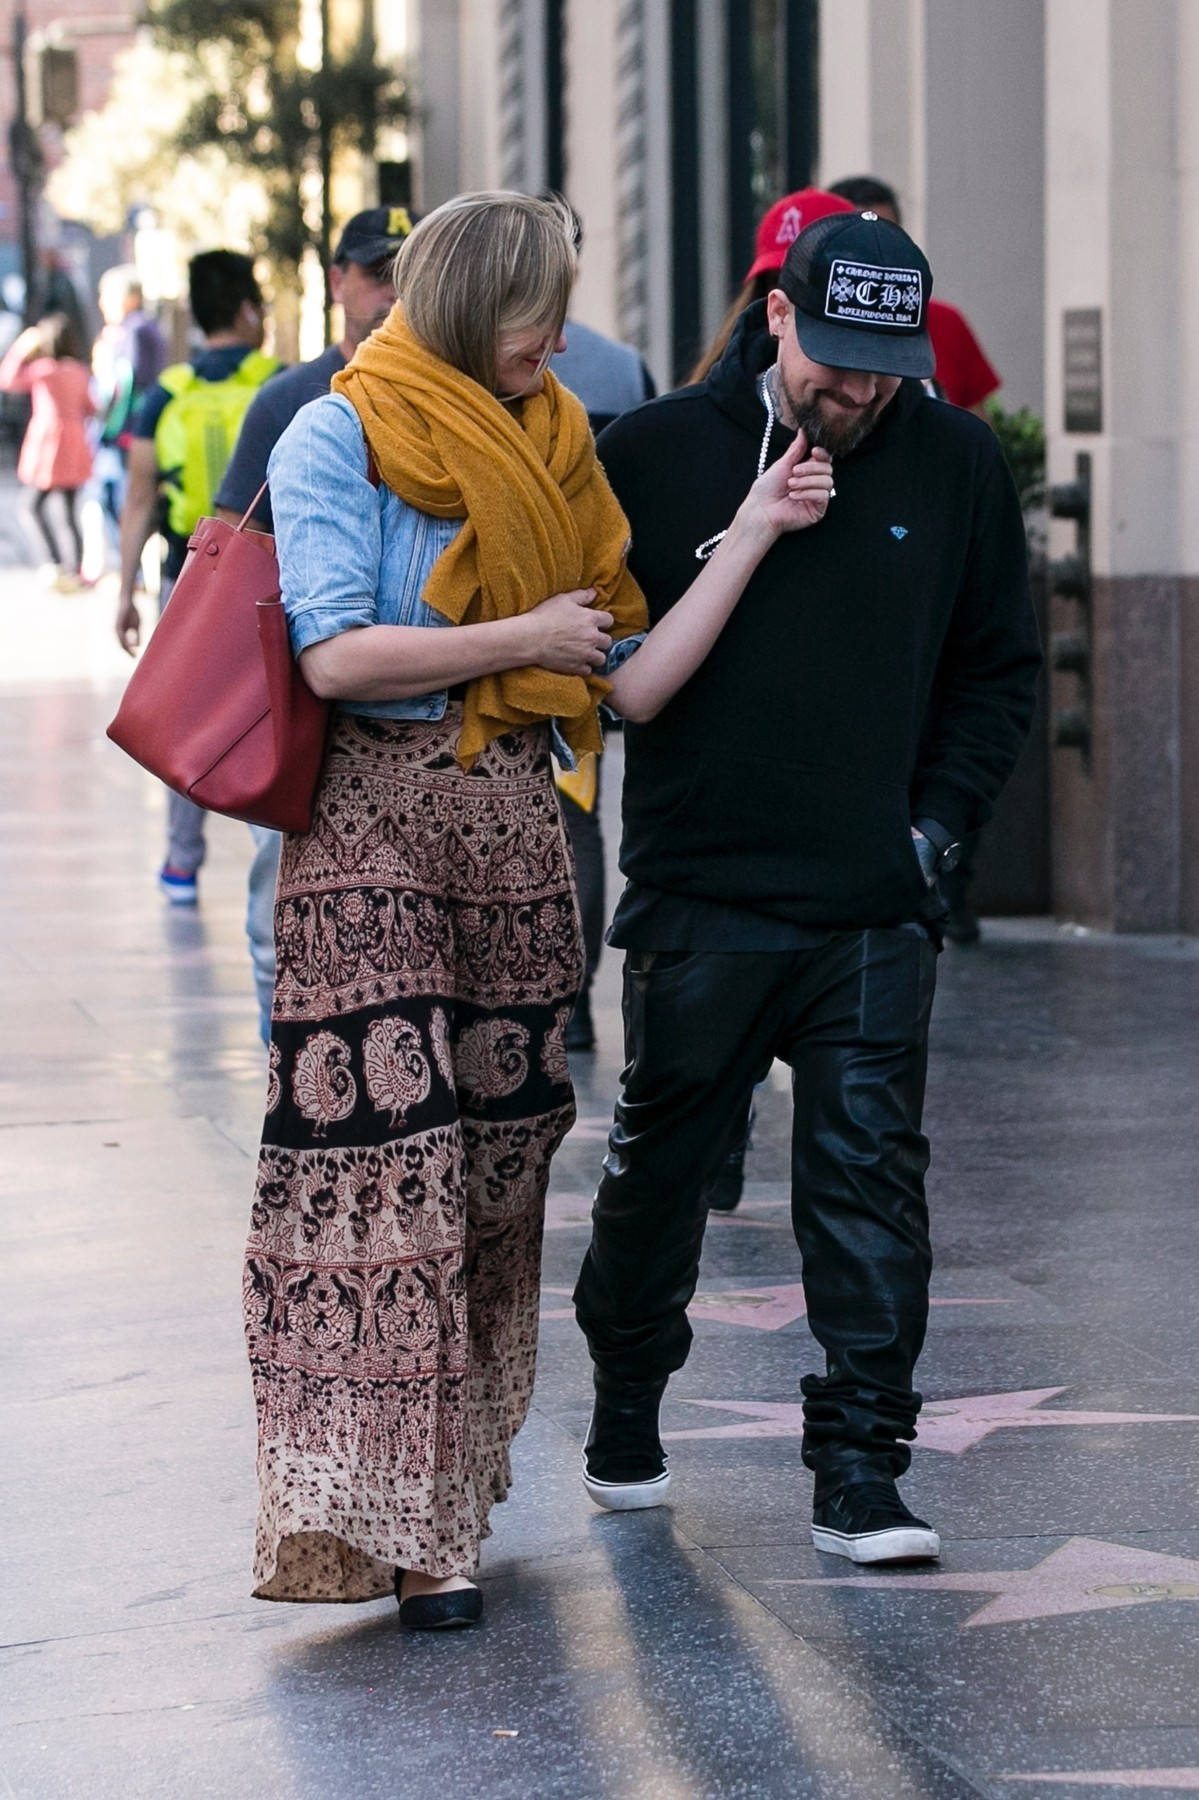 Los Angeles, CA  - *EXCLUSIVE* Camren Diaz and her hubby Benji Madden are seen heading to see